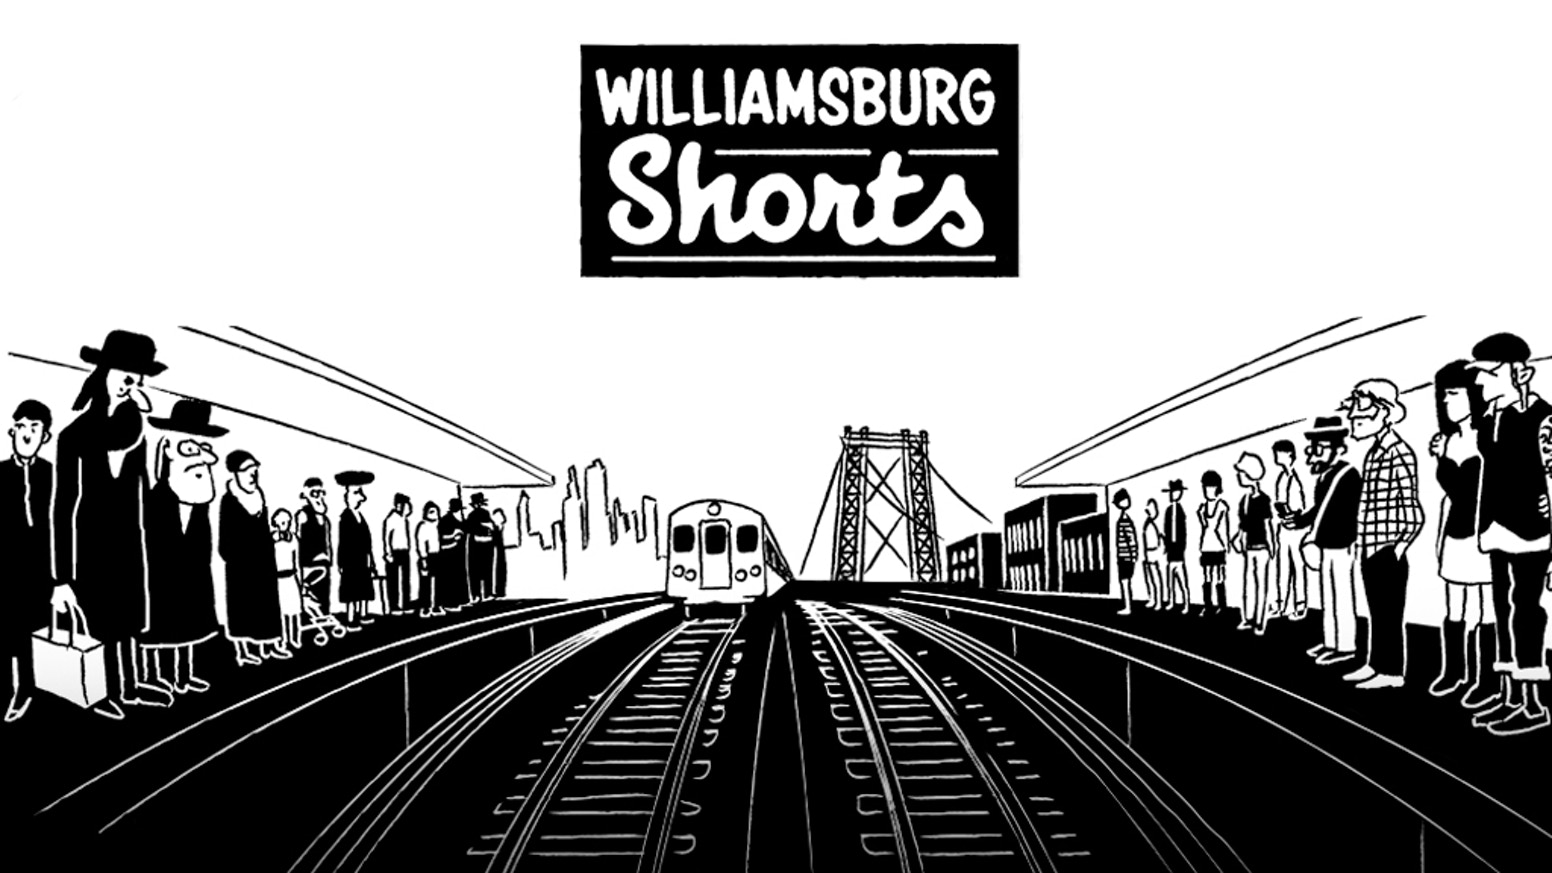 A graphic novel about Williamsburg, with personal and historical events about the neighborhood I've lived in for the past 23 years.